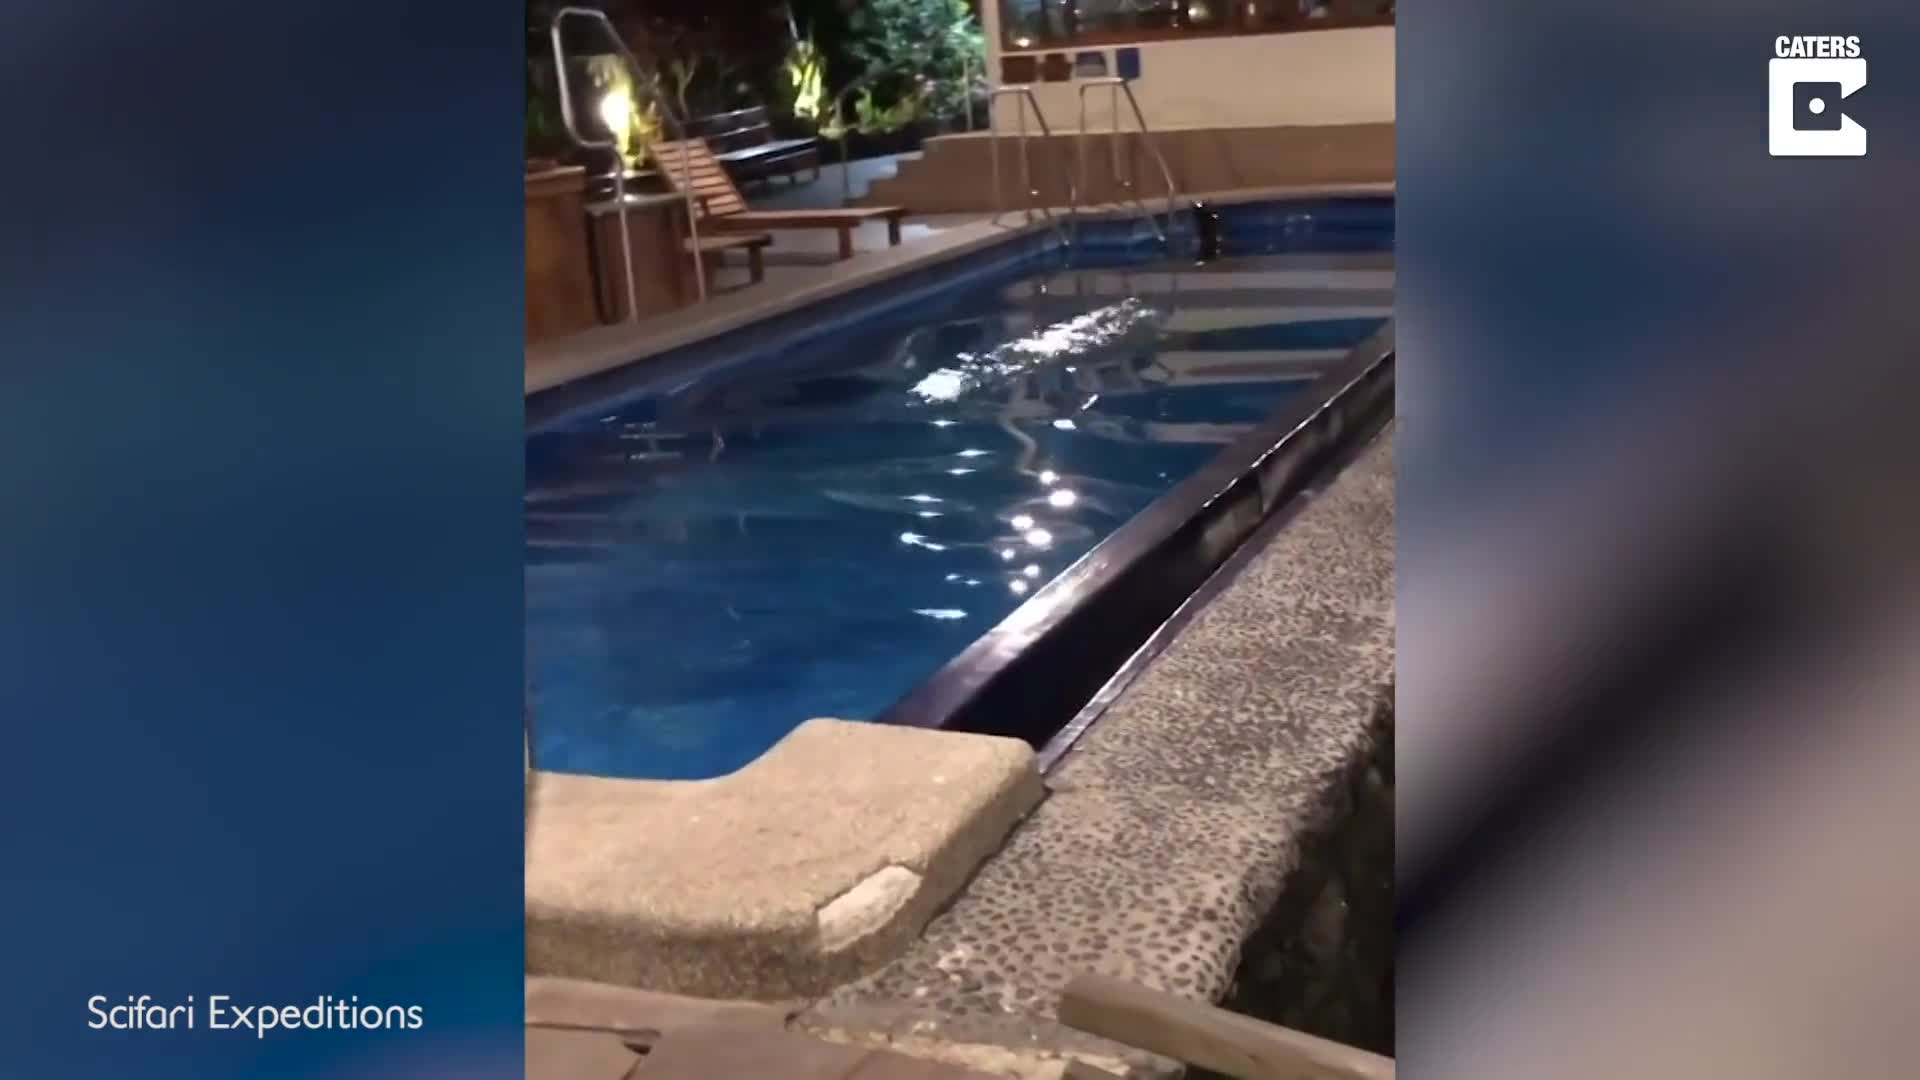 SWIMMING POOL GETS THE SEAL OF APPROVAL AS SEA LION TAKES A DIP